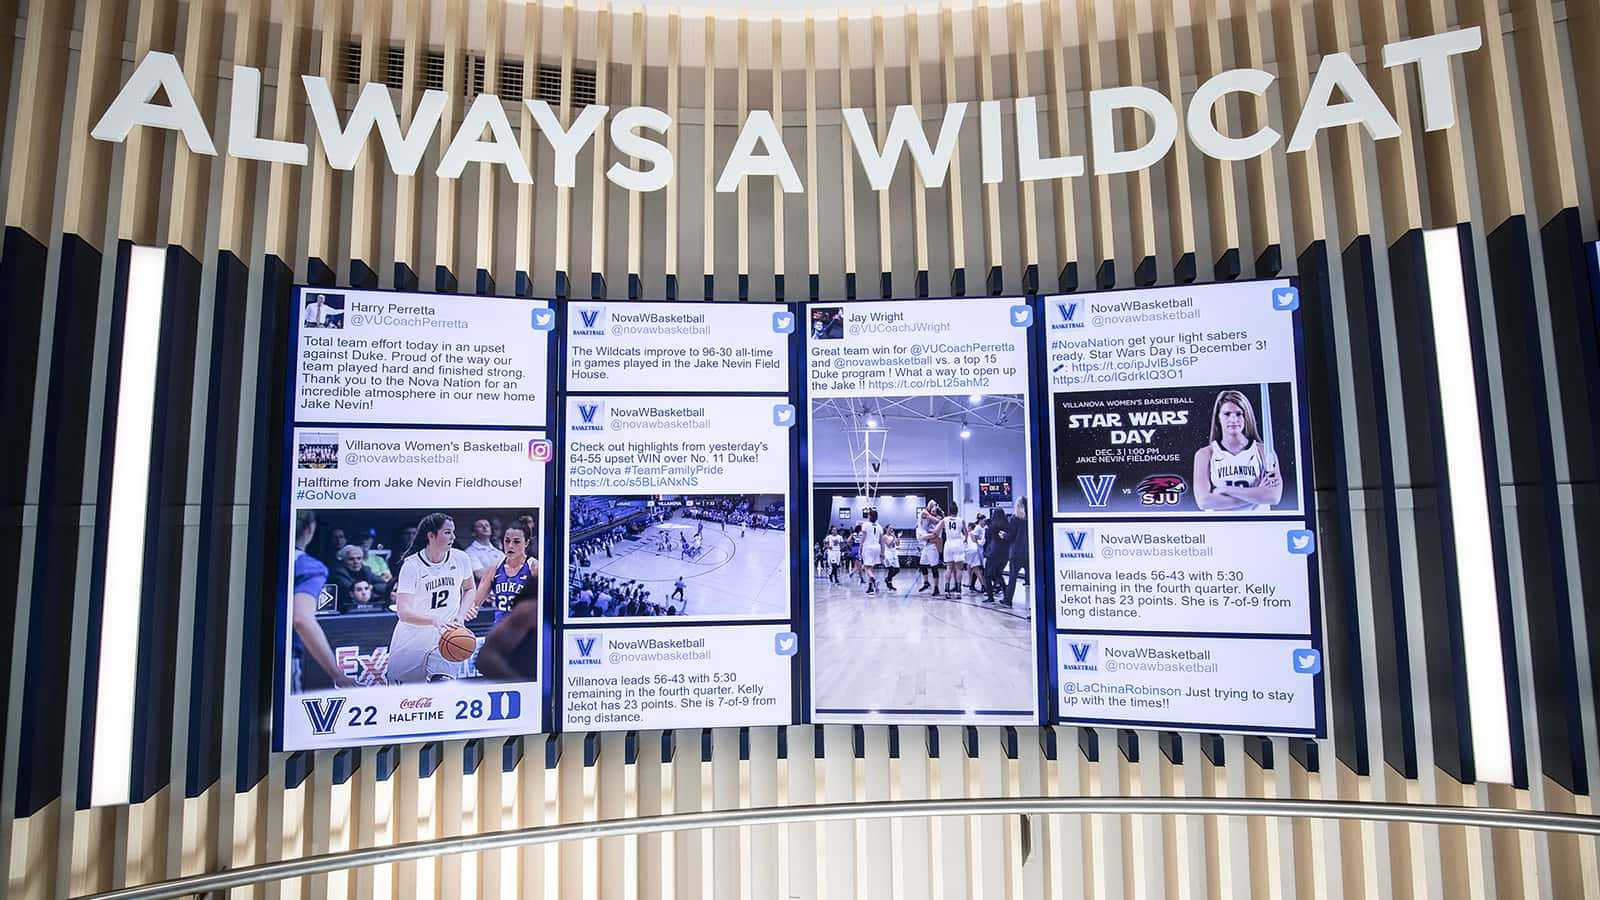 Men's and women's head basketball coaches twitter feeds in the center of the media wall in the atrium of the Villanova Davis Center.